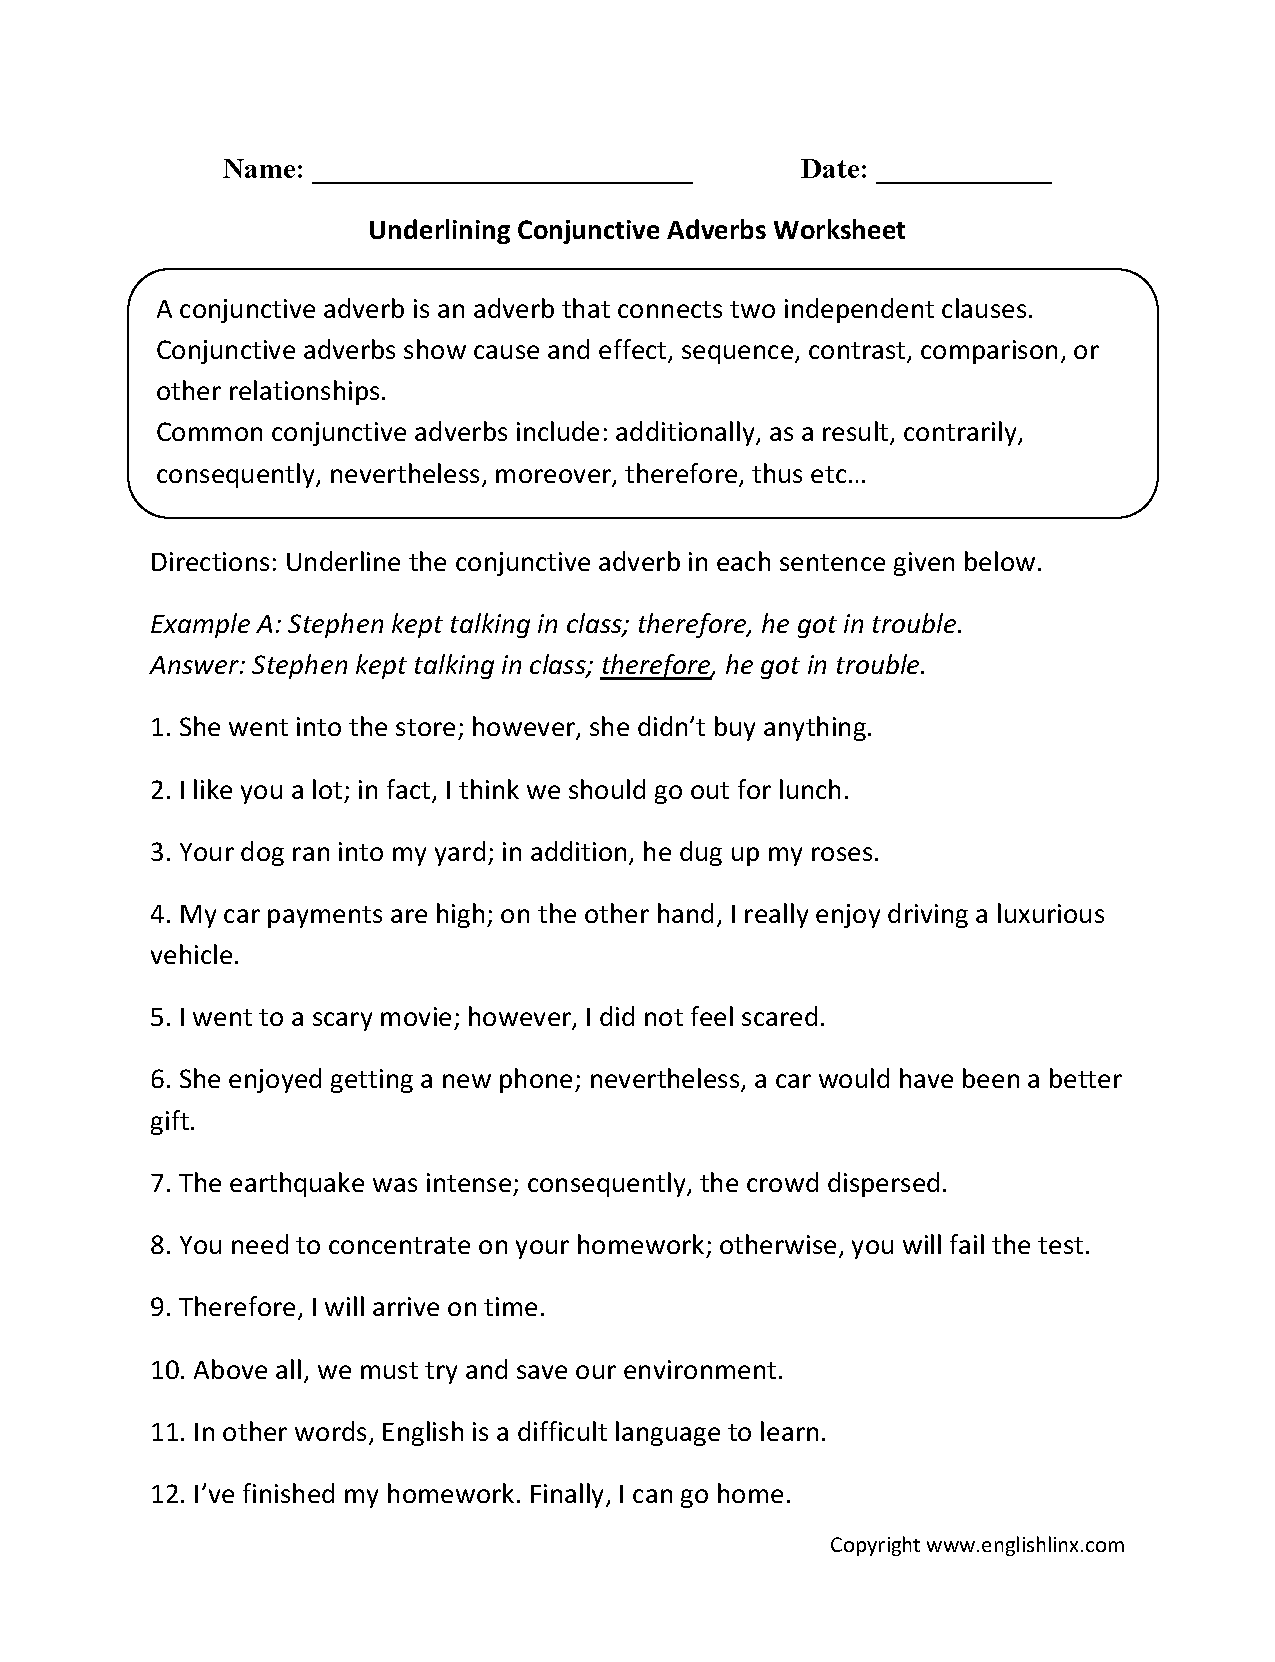 Weirdmailus  Marvelous Englishlinxcom  Conjunctions Worksheets With Great Worksheet With Breathtaking Multiplication And Division Worksheets Printable Also Rounding Up And Down Worksheets In Addition Tally Charts And Bar Graphs Worksheets And Part Of A Plant Worksheet As Well As Worksheet On Addition And Subtraction Additionally Th Day Of School Worksheet From Englishlinxcom With Weirdmailus  Great Englishlinxcom  Conjunctions Worksheets With Breathtaking Worksheet And Marvelous Multiplication And Division Worksheets Printable Also Rounding Up And Down Worksheets In Addition Tally Charts And Bar Graphs Worksheets From Englishlinxcom